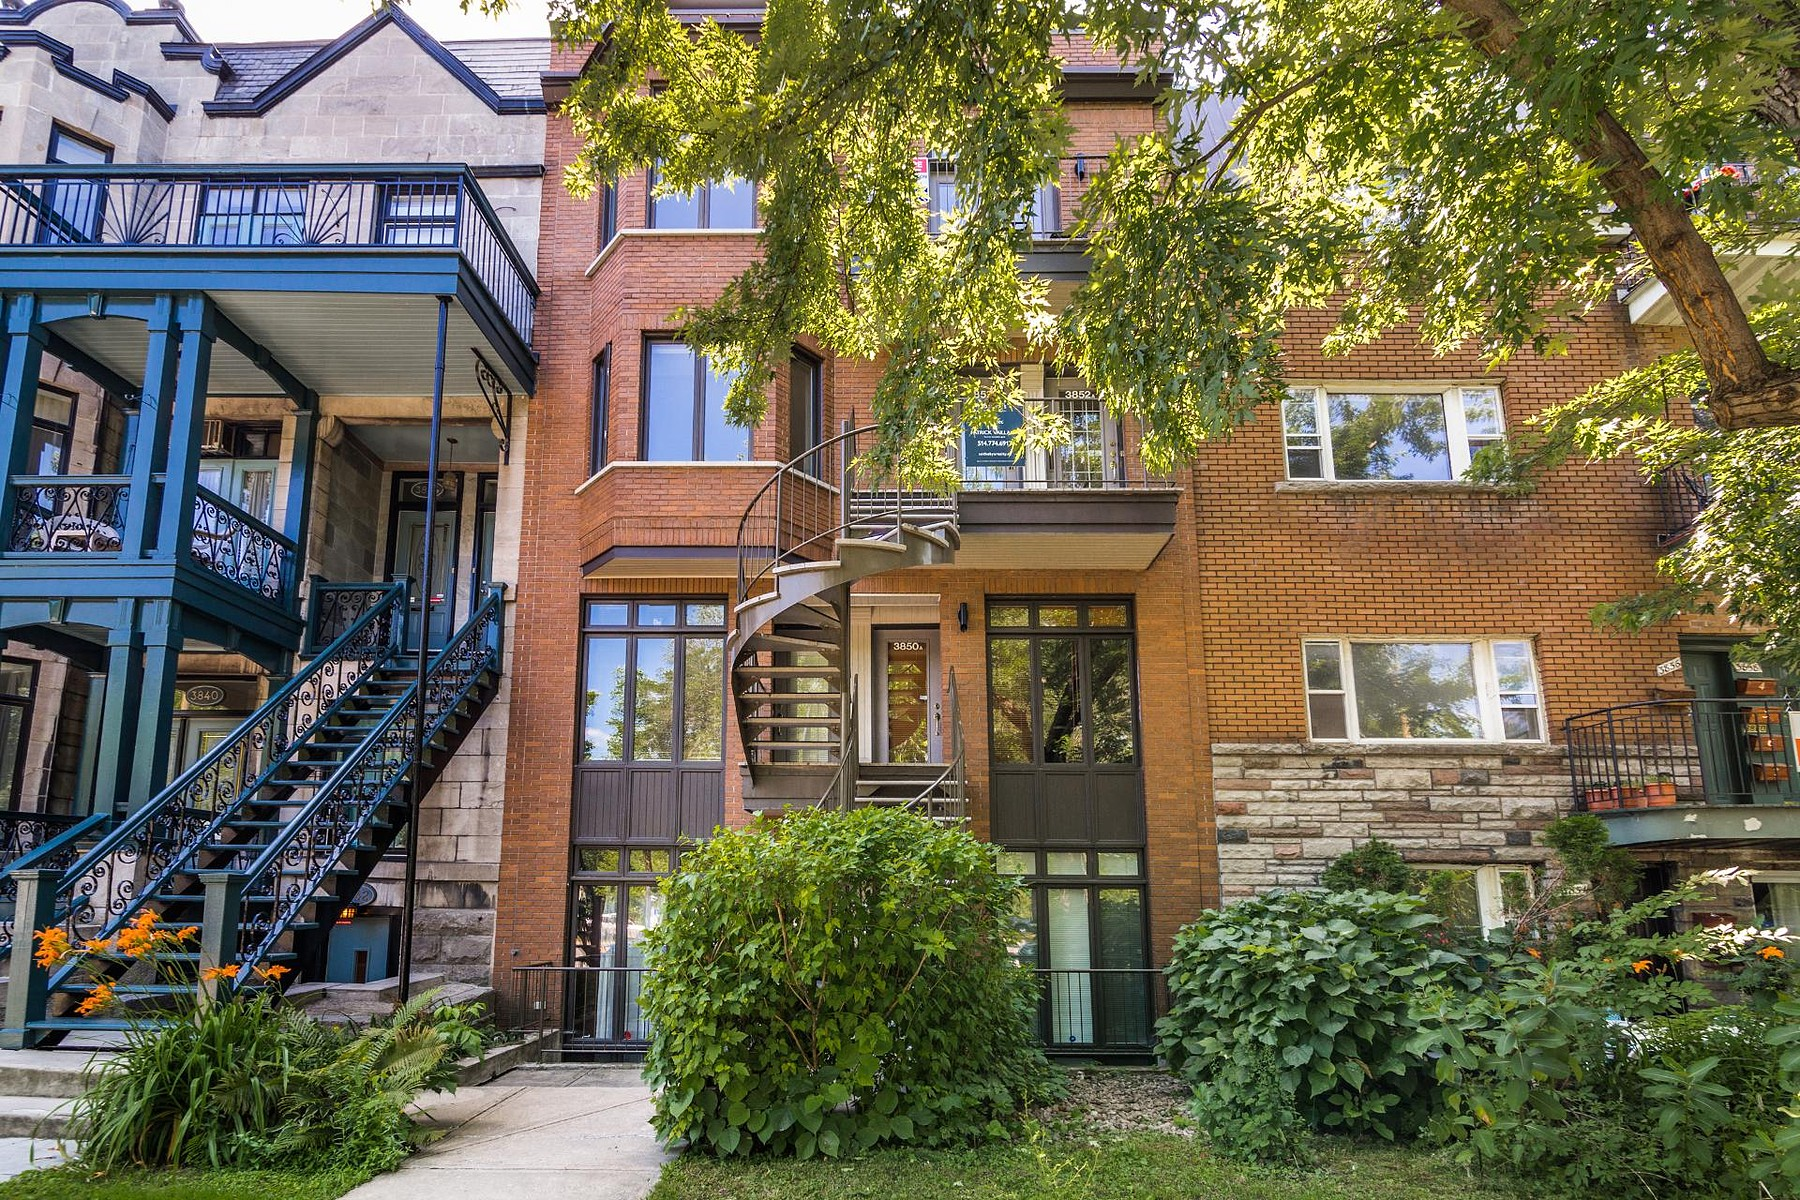 Single Family Home for Sale at On the Park Lafontaine 3852 Av. du Parc-La Fontaine Montreal, Quebec H2L3M6 Canada